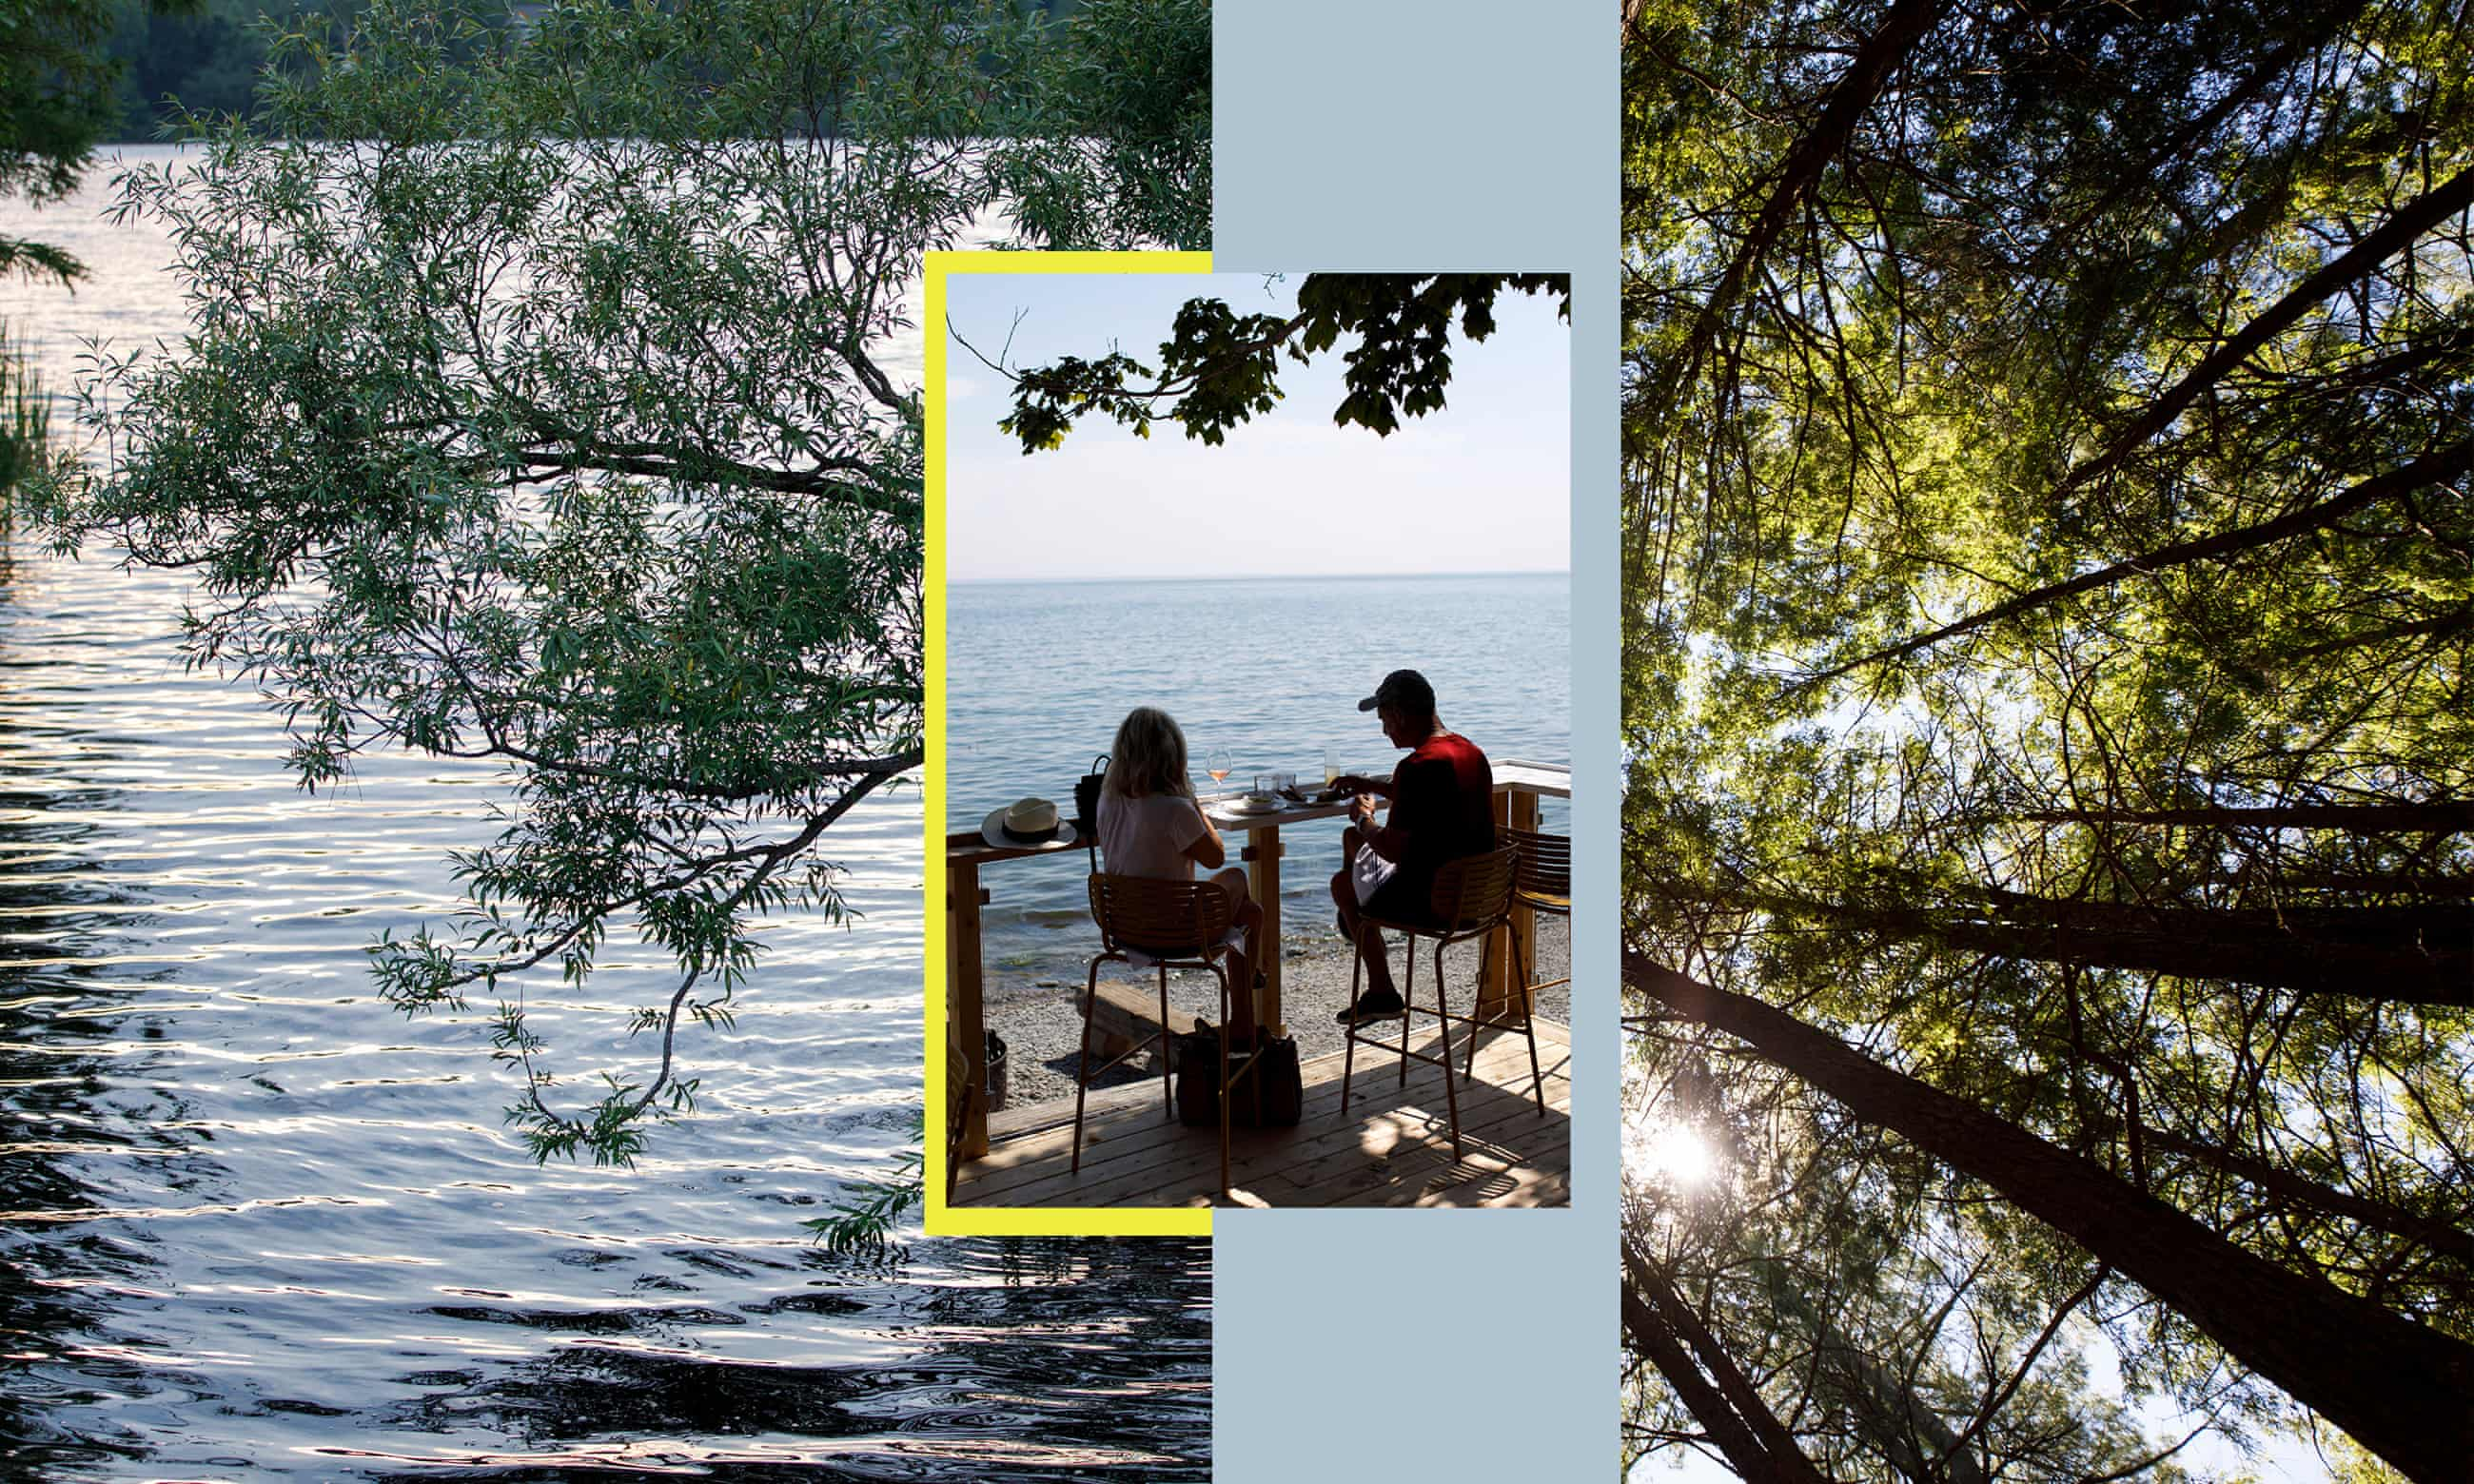 Ontario's wild beauty and rugged adventure is all in the outdoors